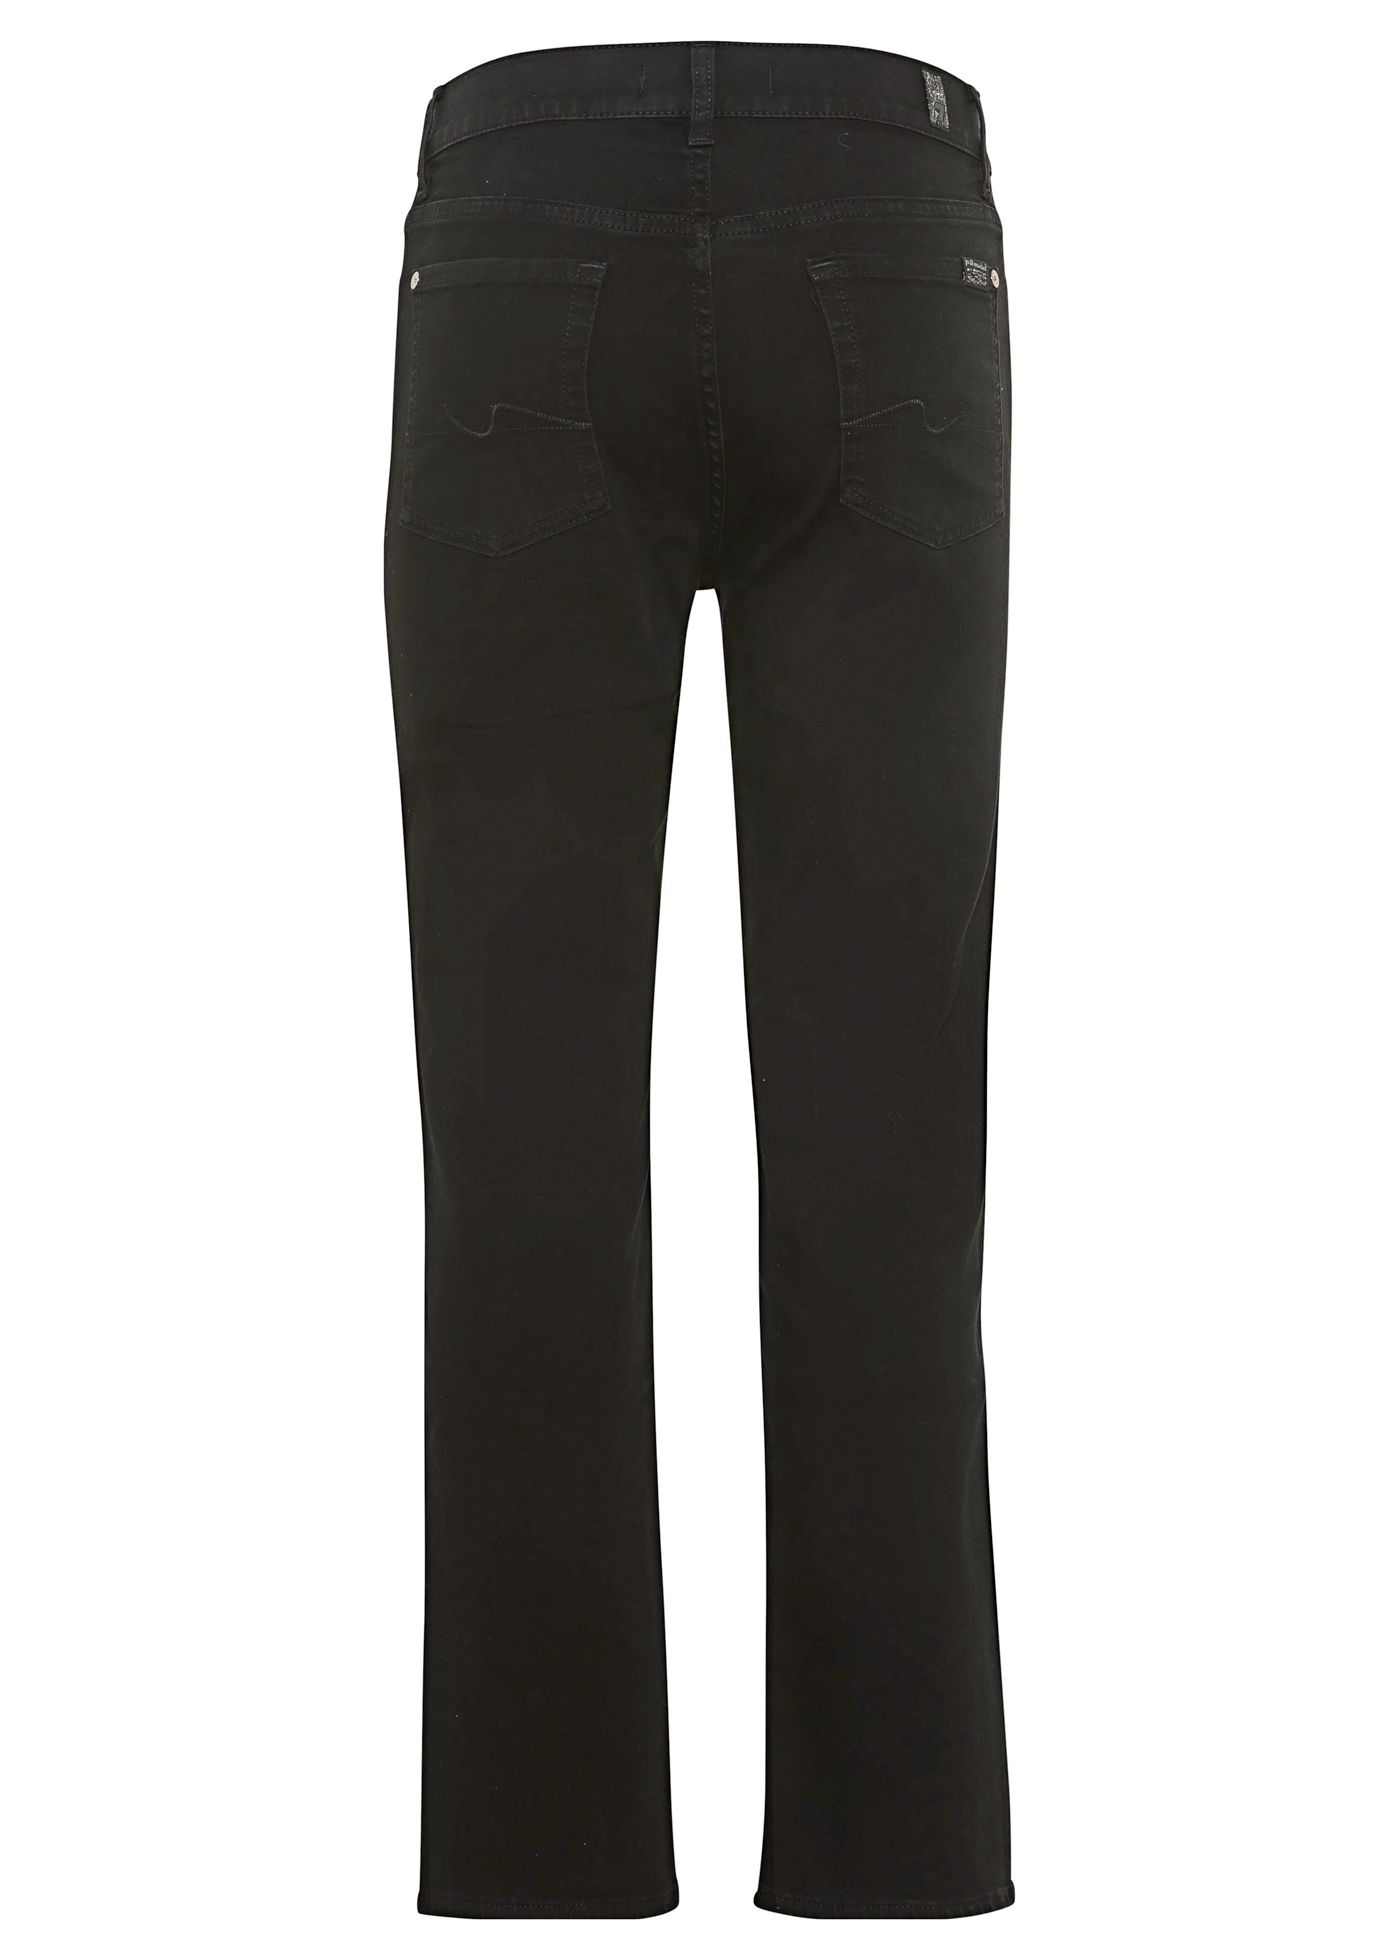 THE STRAIGHT CROP Bair Rinsed Black with Exposed Buttons image number 1